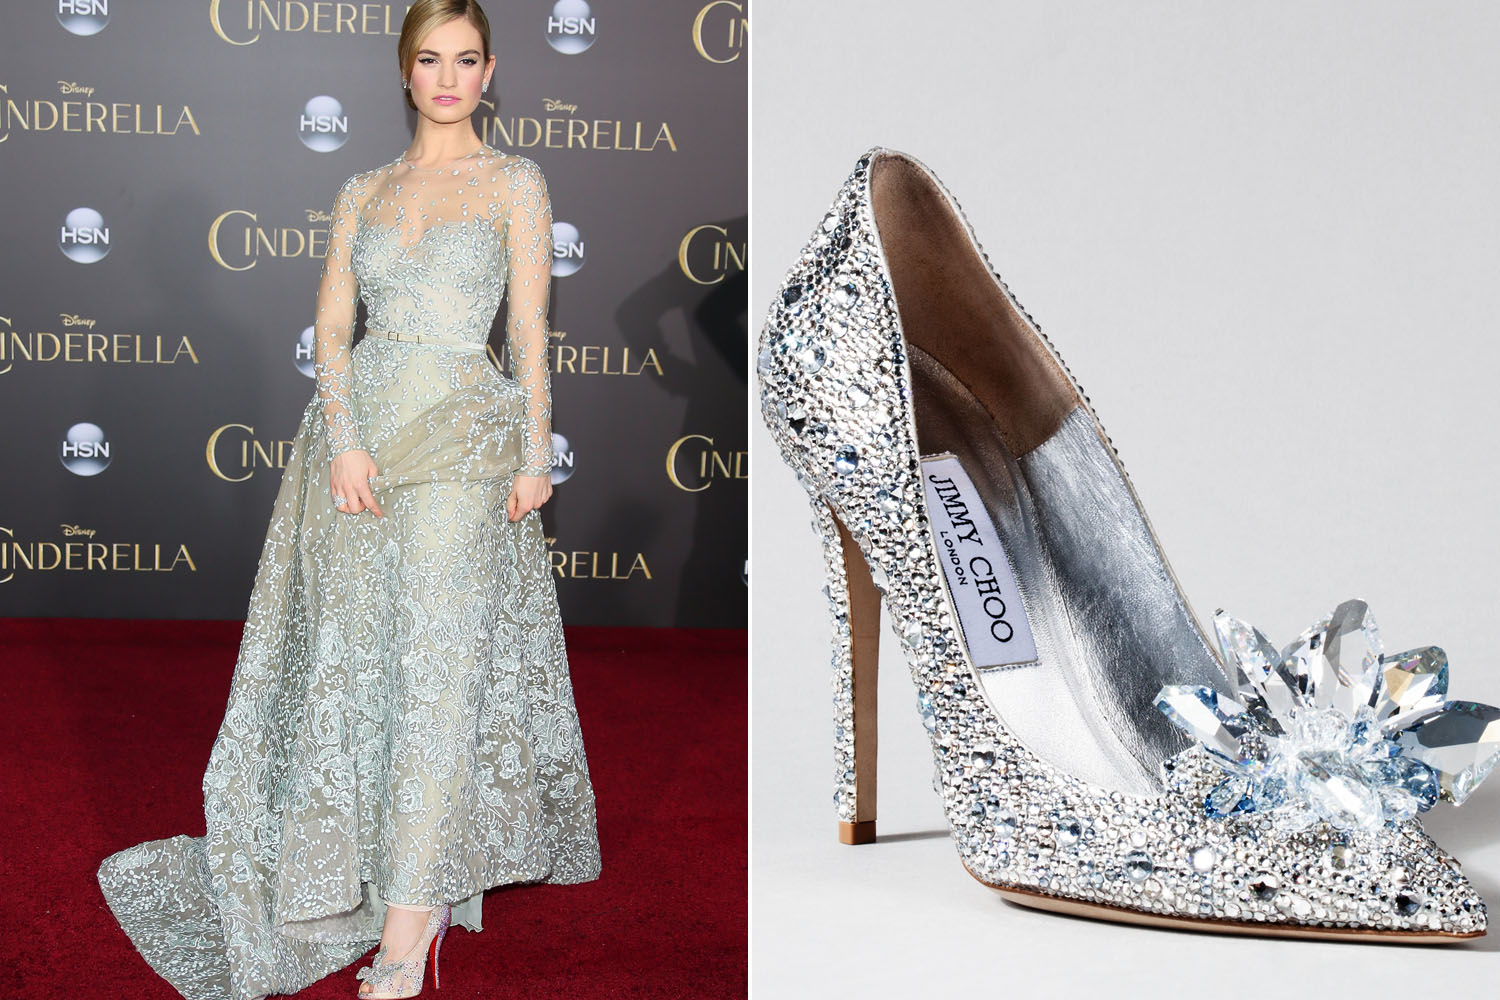 Jimmy Choo perfects glass slippers made